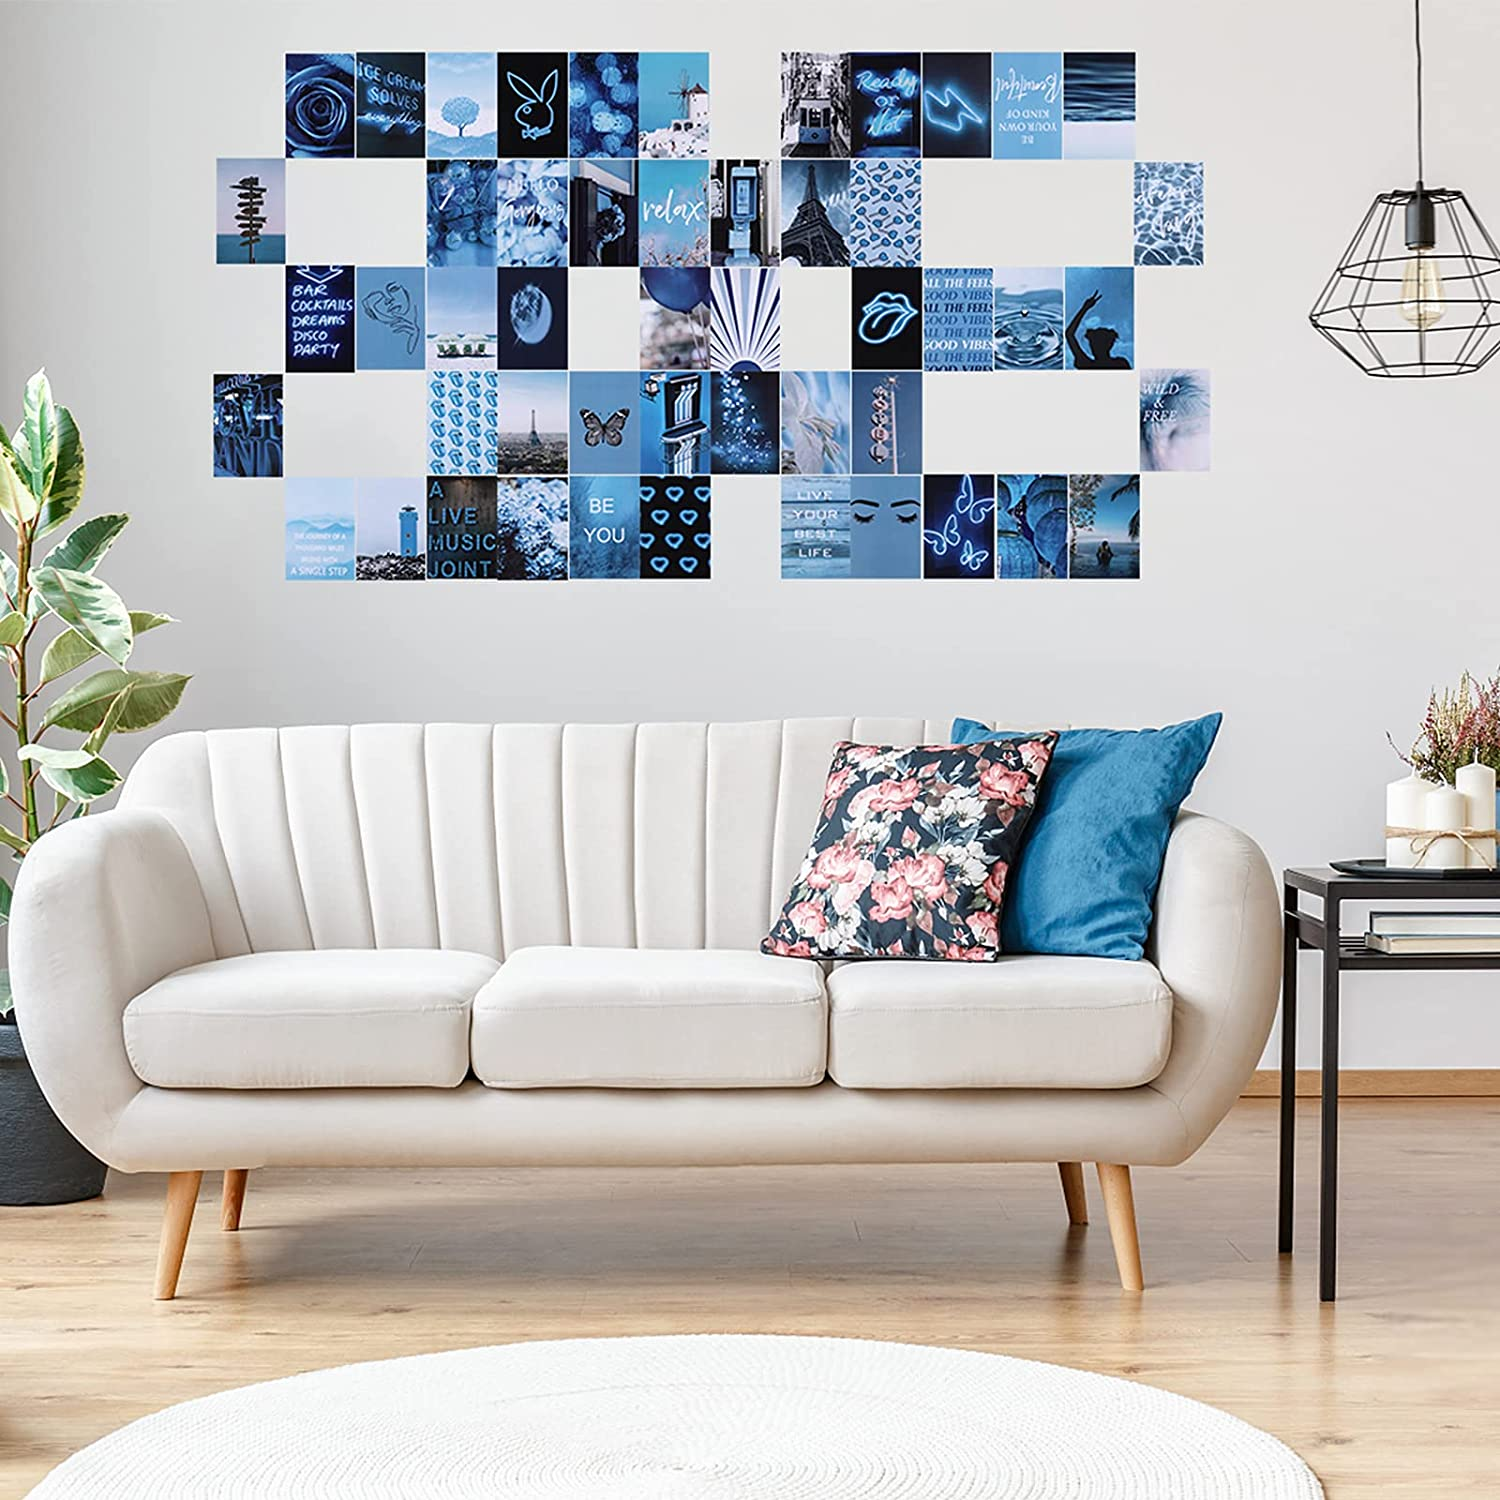 ZIIVARD 50 PCS Blue Wall Collage Kit Aesthetic Pictures, Collage Kit For Wall Aesthetic, Posters For Room Aesthetic Wall Images, Teen Girl Room Decor(50 PCS Blue 4x6 Inch)